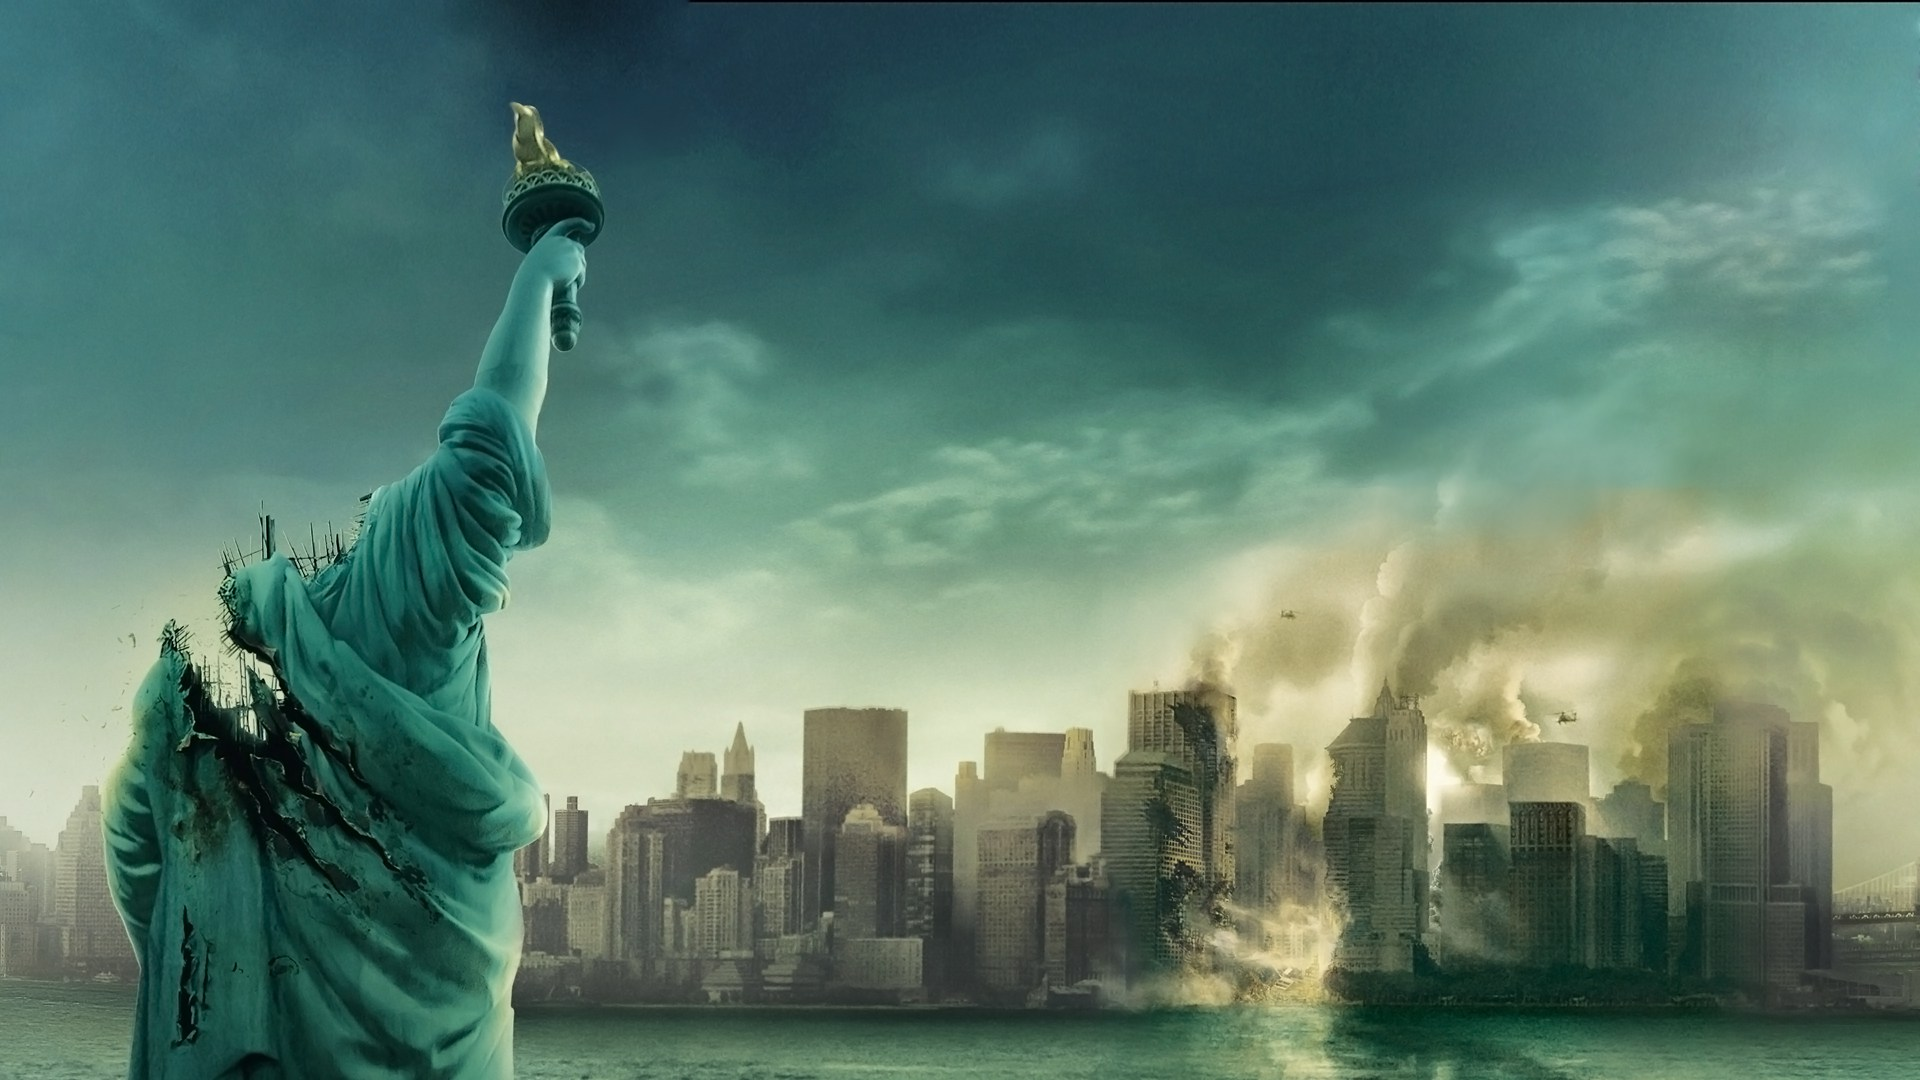 Cloverfield 3 may now debut on Netflix too